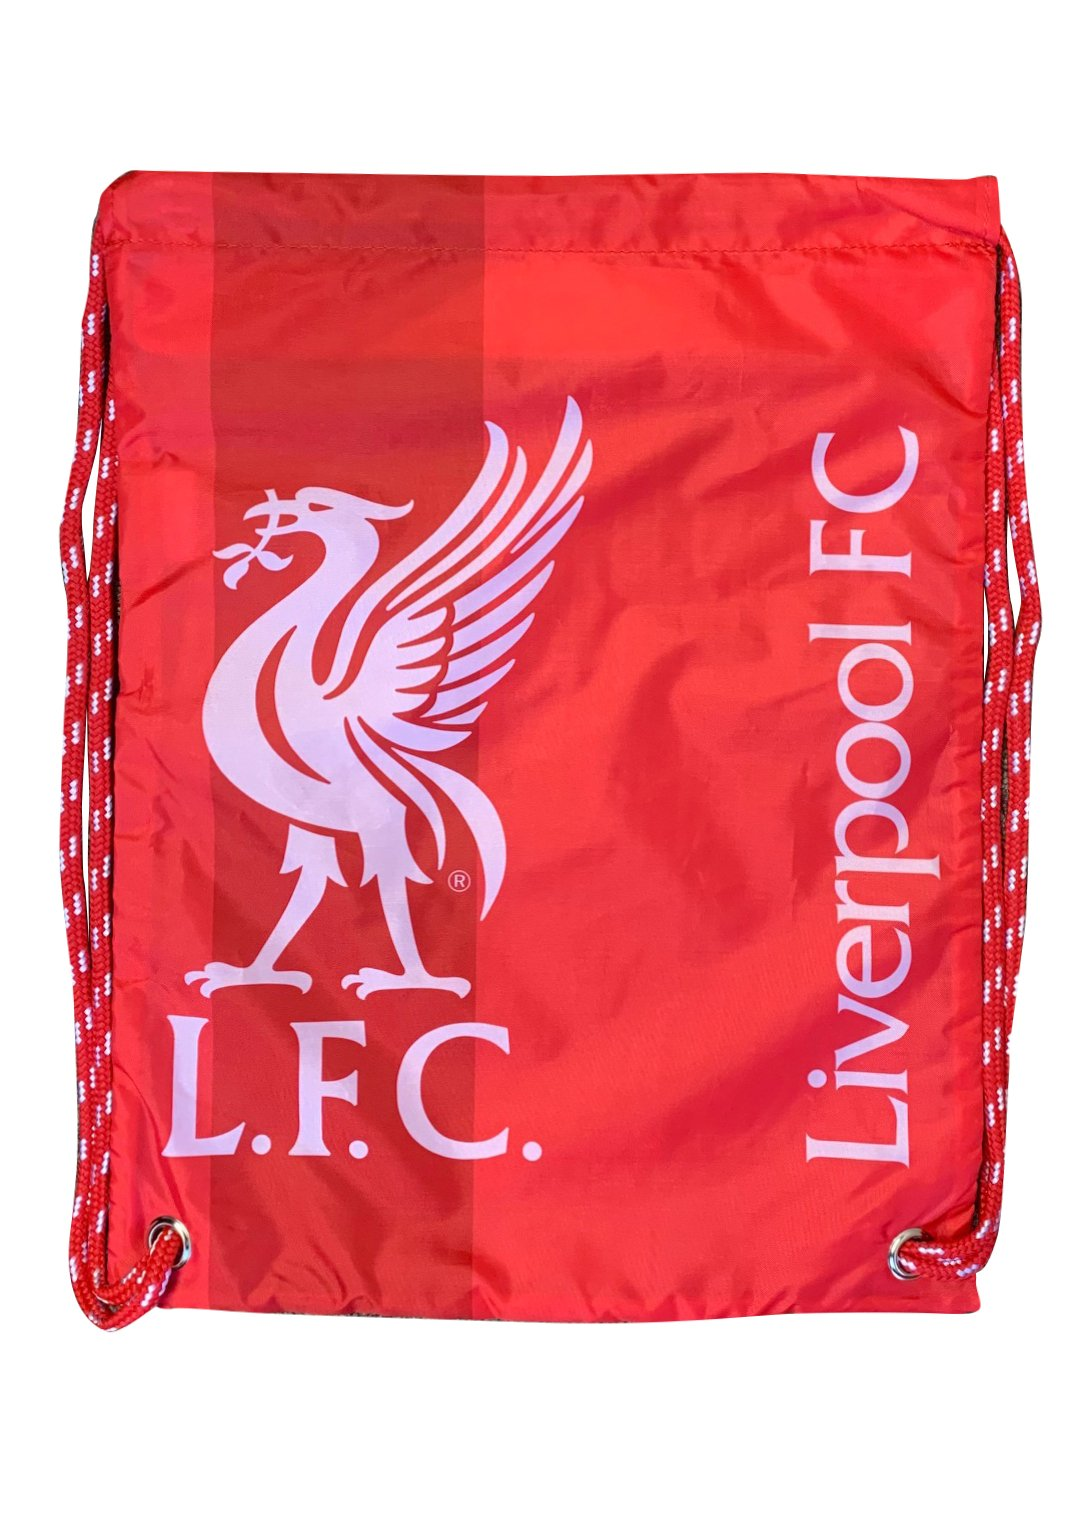 Liverpool FC Ultimate Fan Pack by Icon Sports